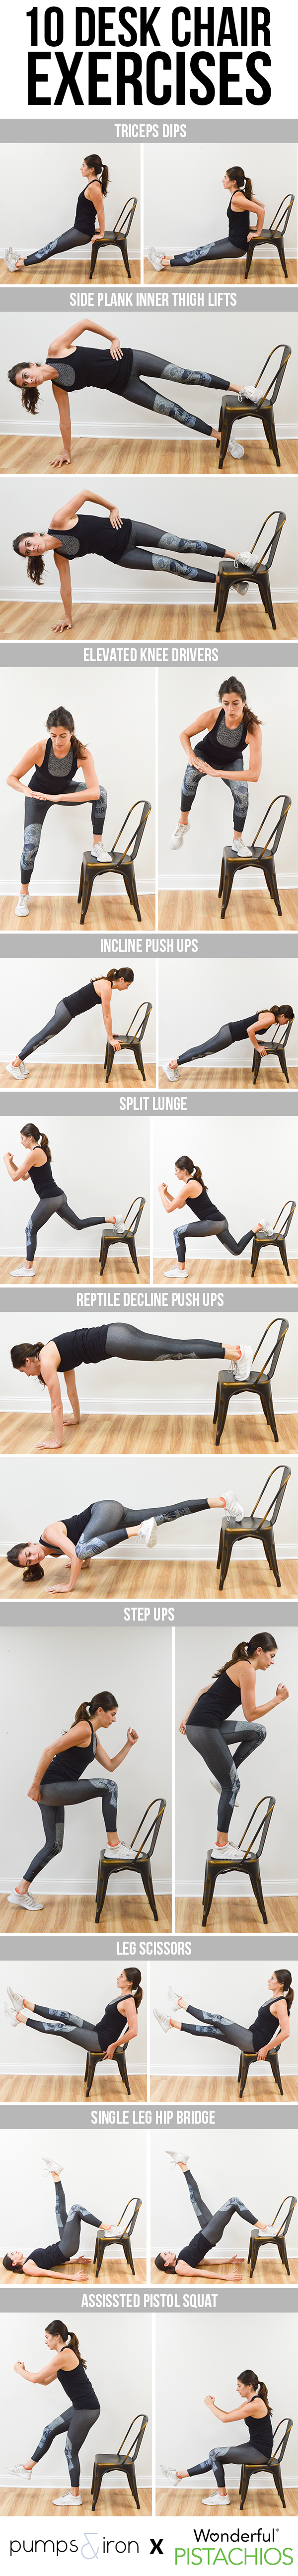 10 Exercises You Can Do with a Desk Chair